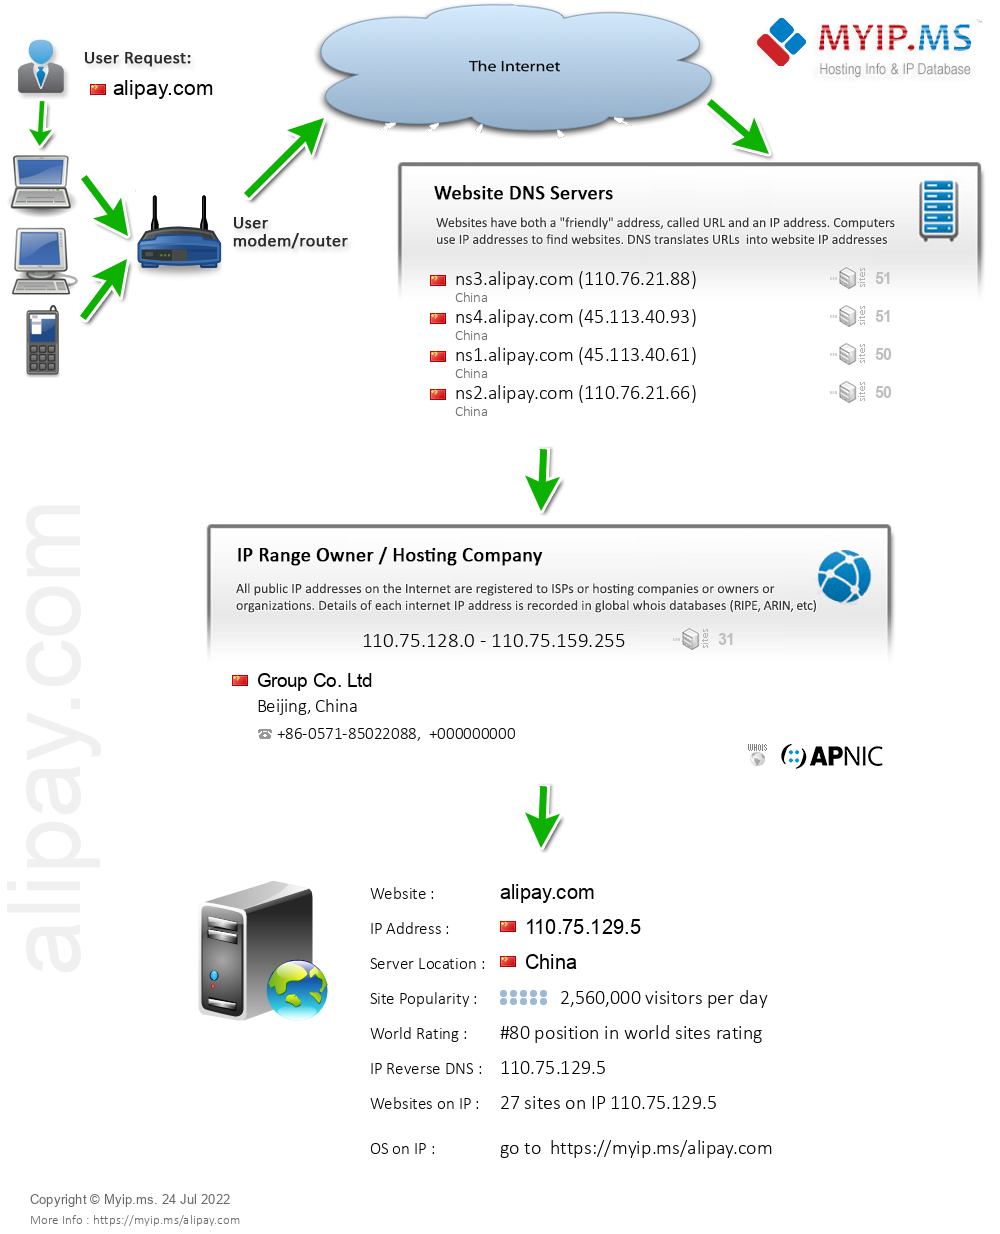 Alipay.com - Website Hosting Visual IP Diagram